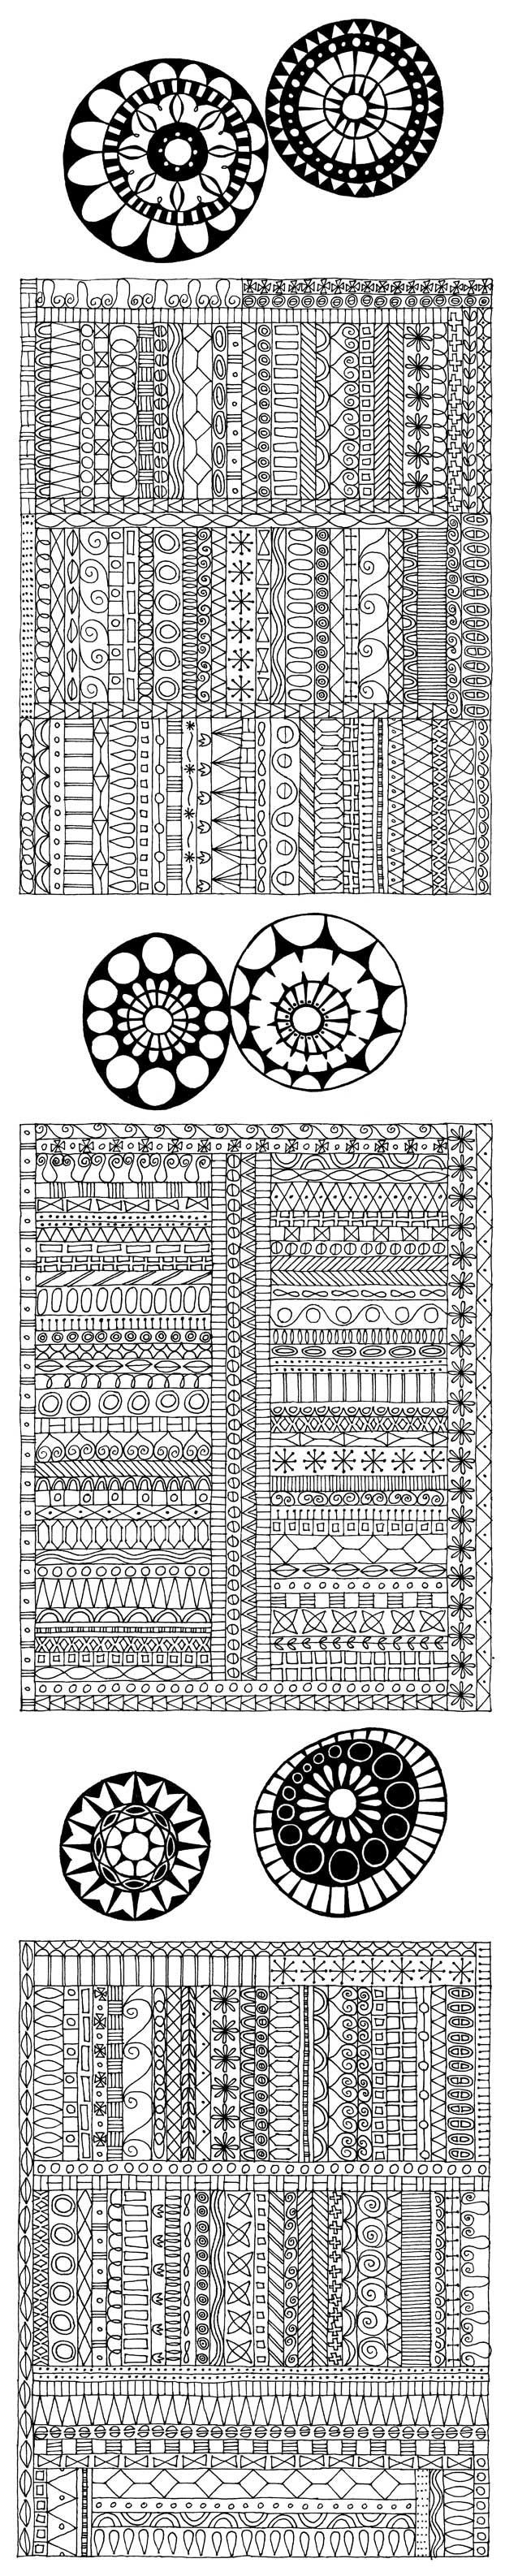 Awesome border sampler by Miriam Badyrka (The Doodler) - whether she meant to do that or not ;):